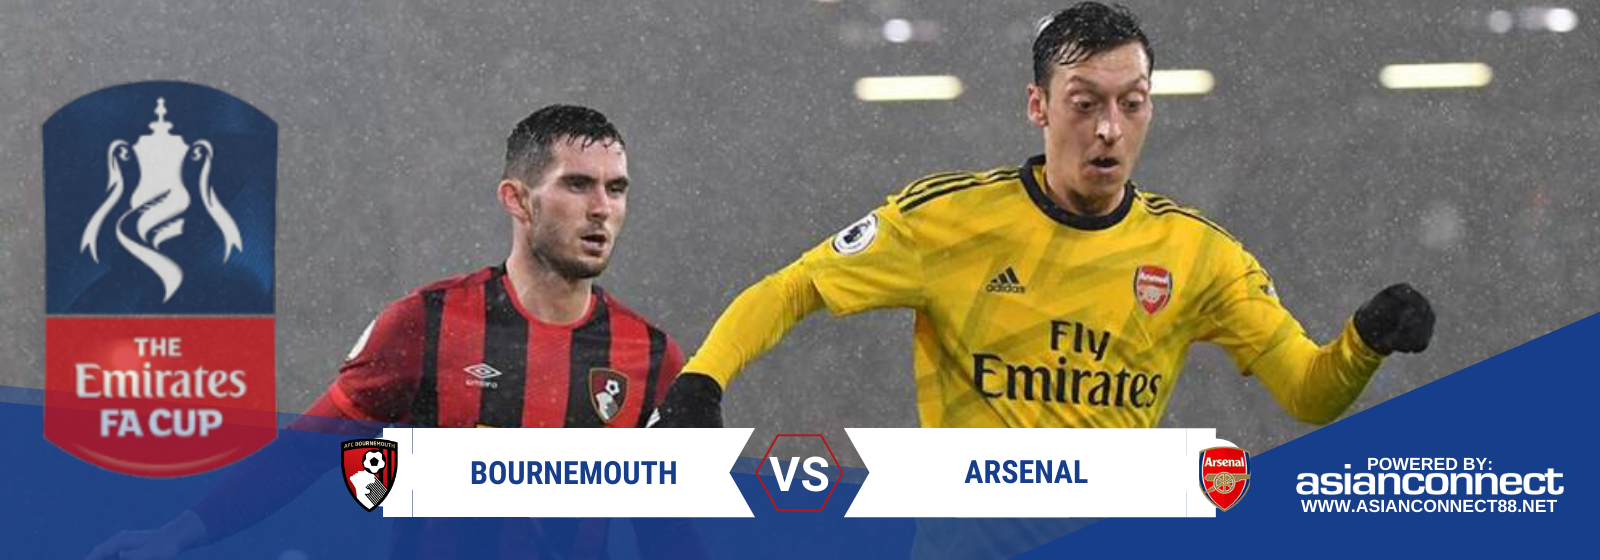 Asianconnect: Bournemouth vs Arsenal Odds for January 27, 2020